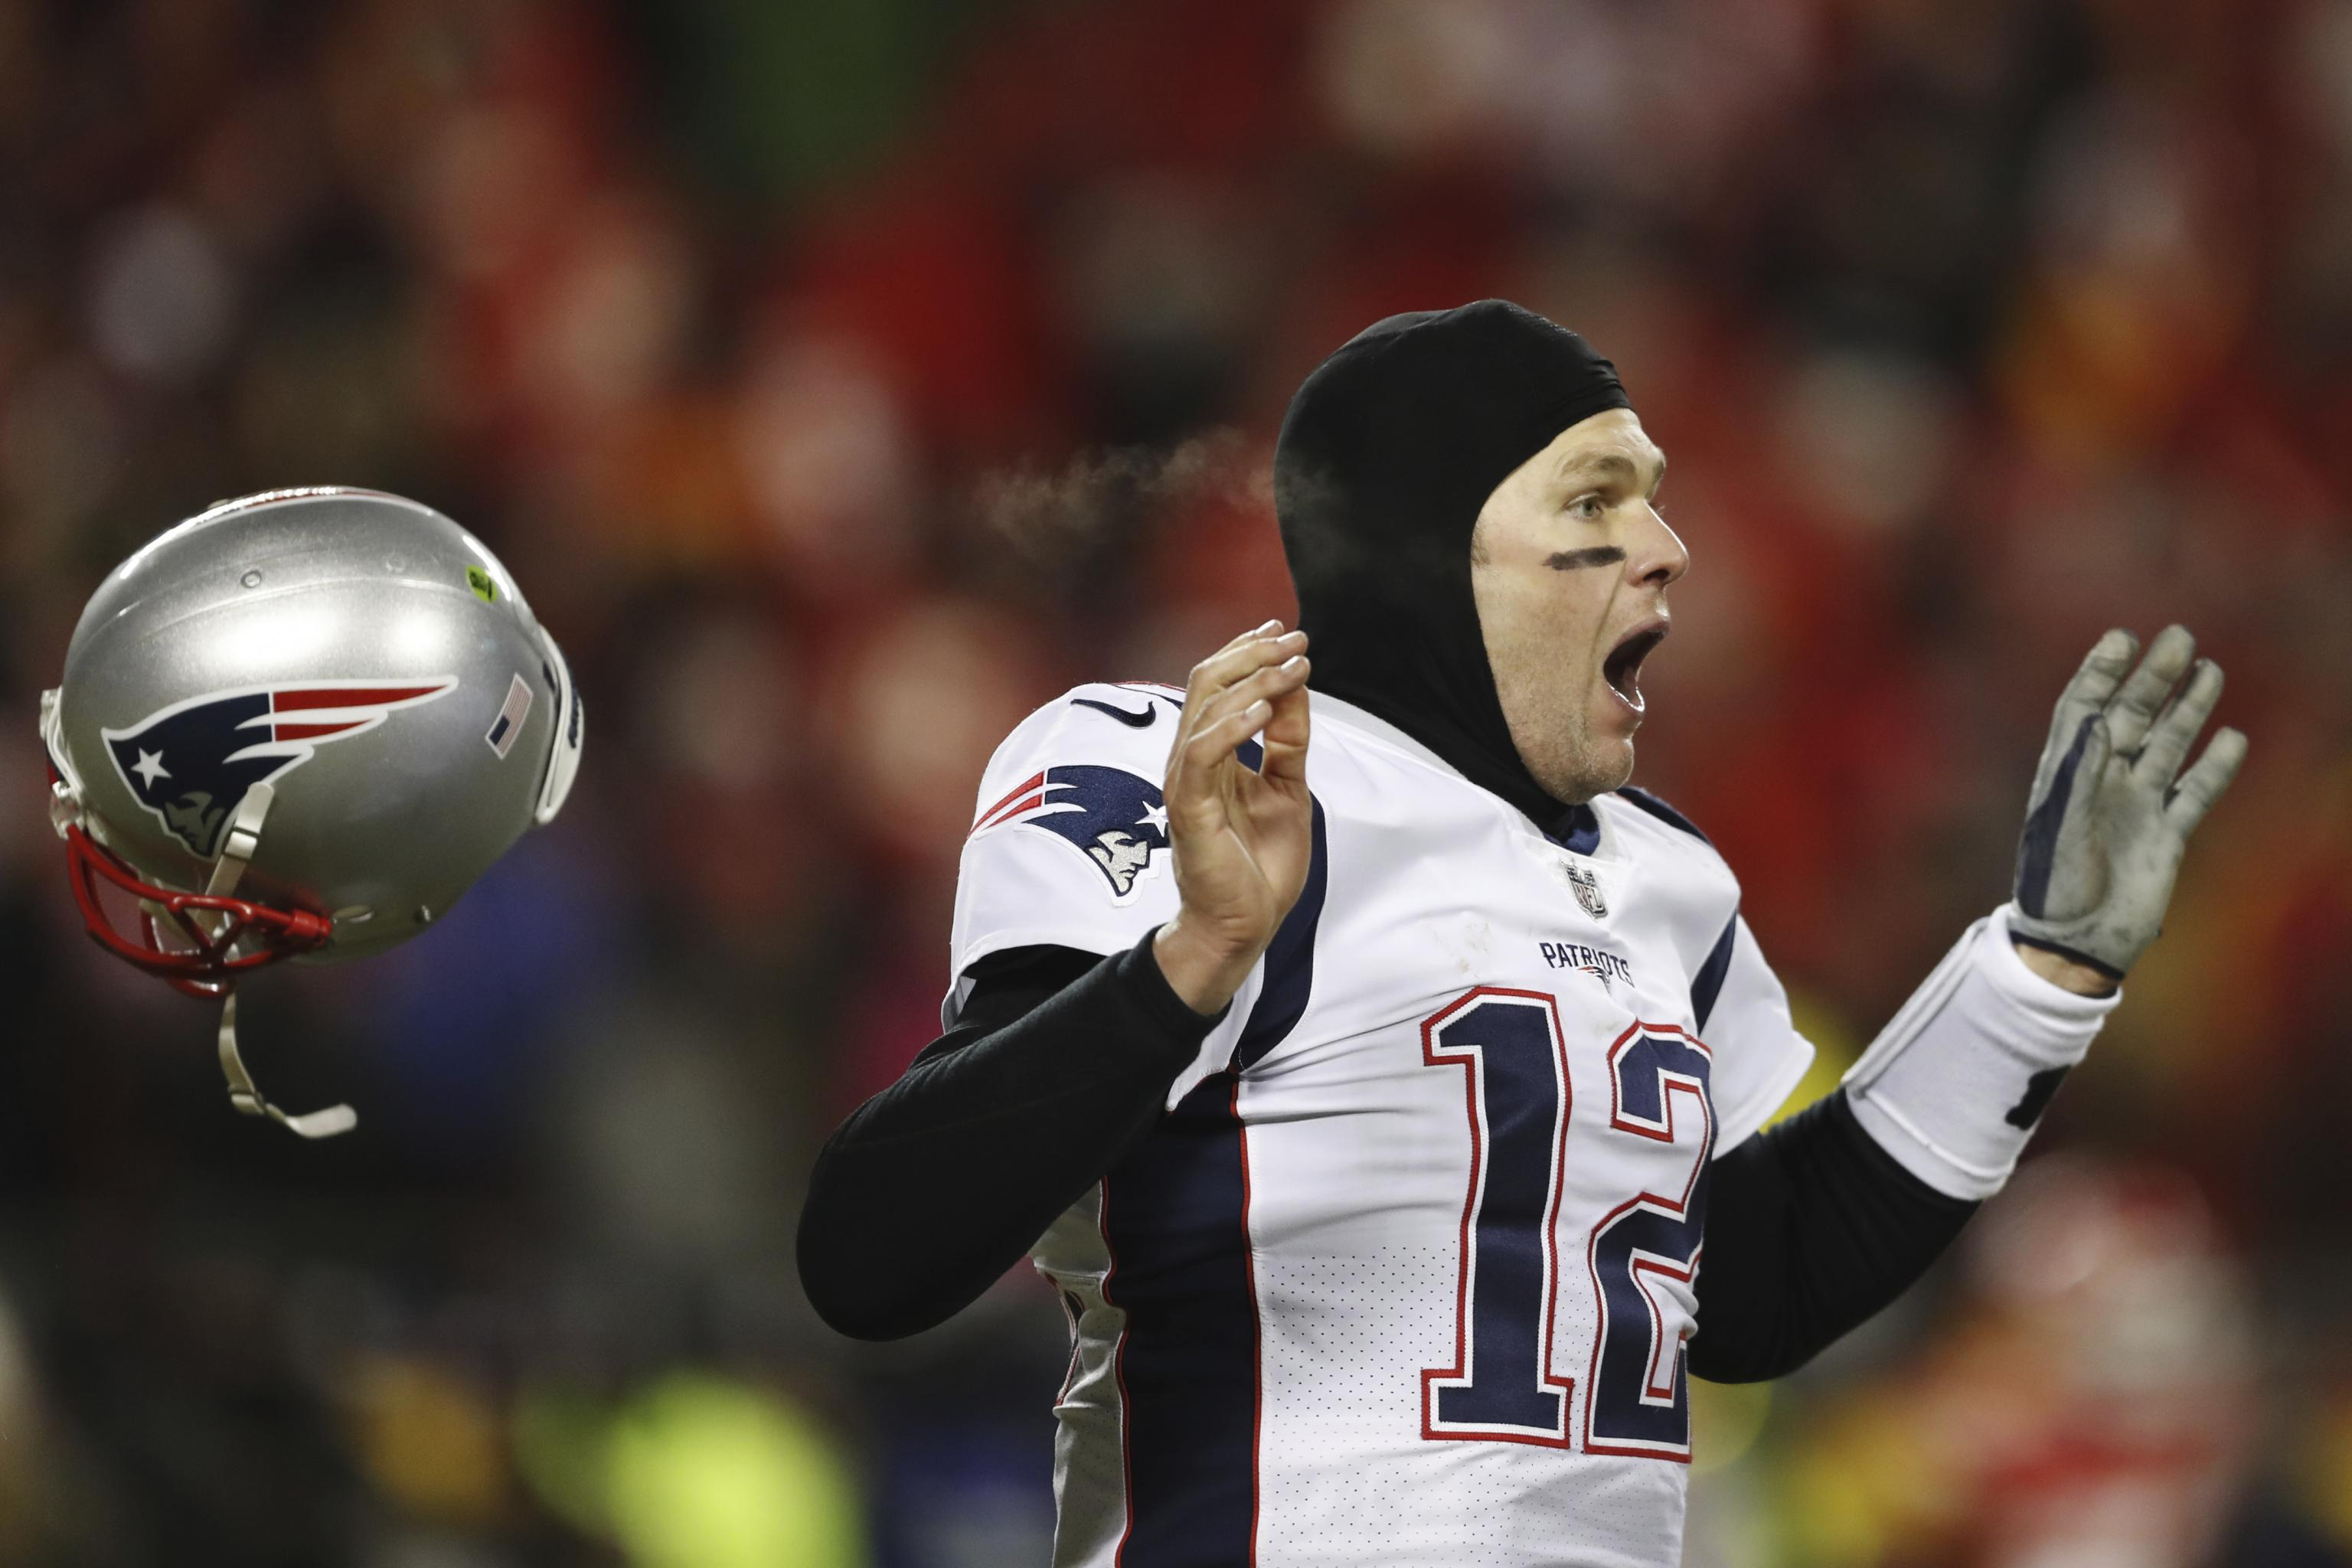 Afc Championship Game 2019 Final Score Highlights From Patriots Vs Chiefs Bleacher Report Latest News Videos And Highlights